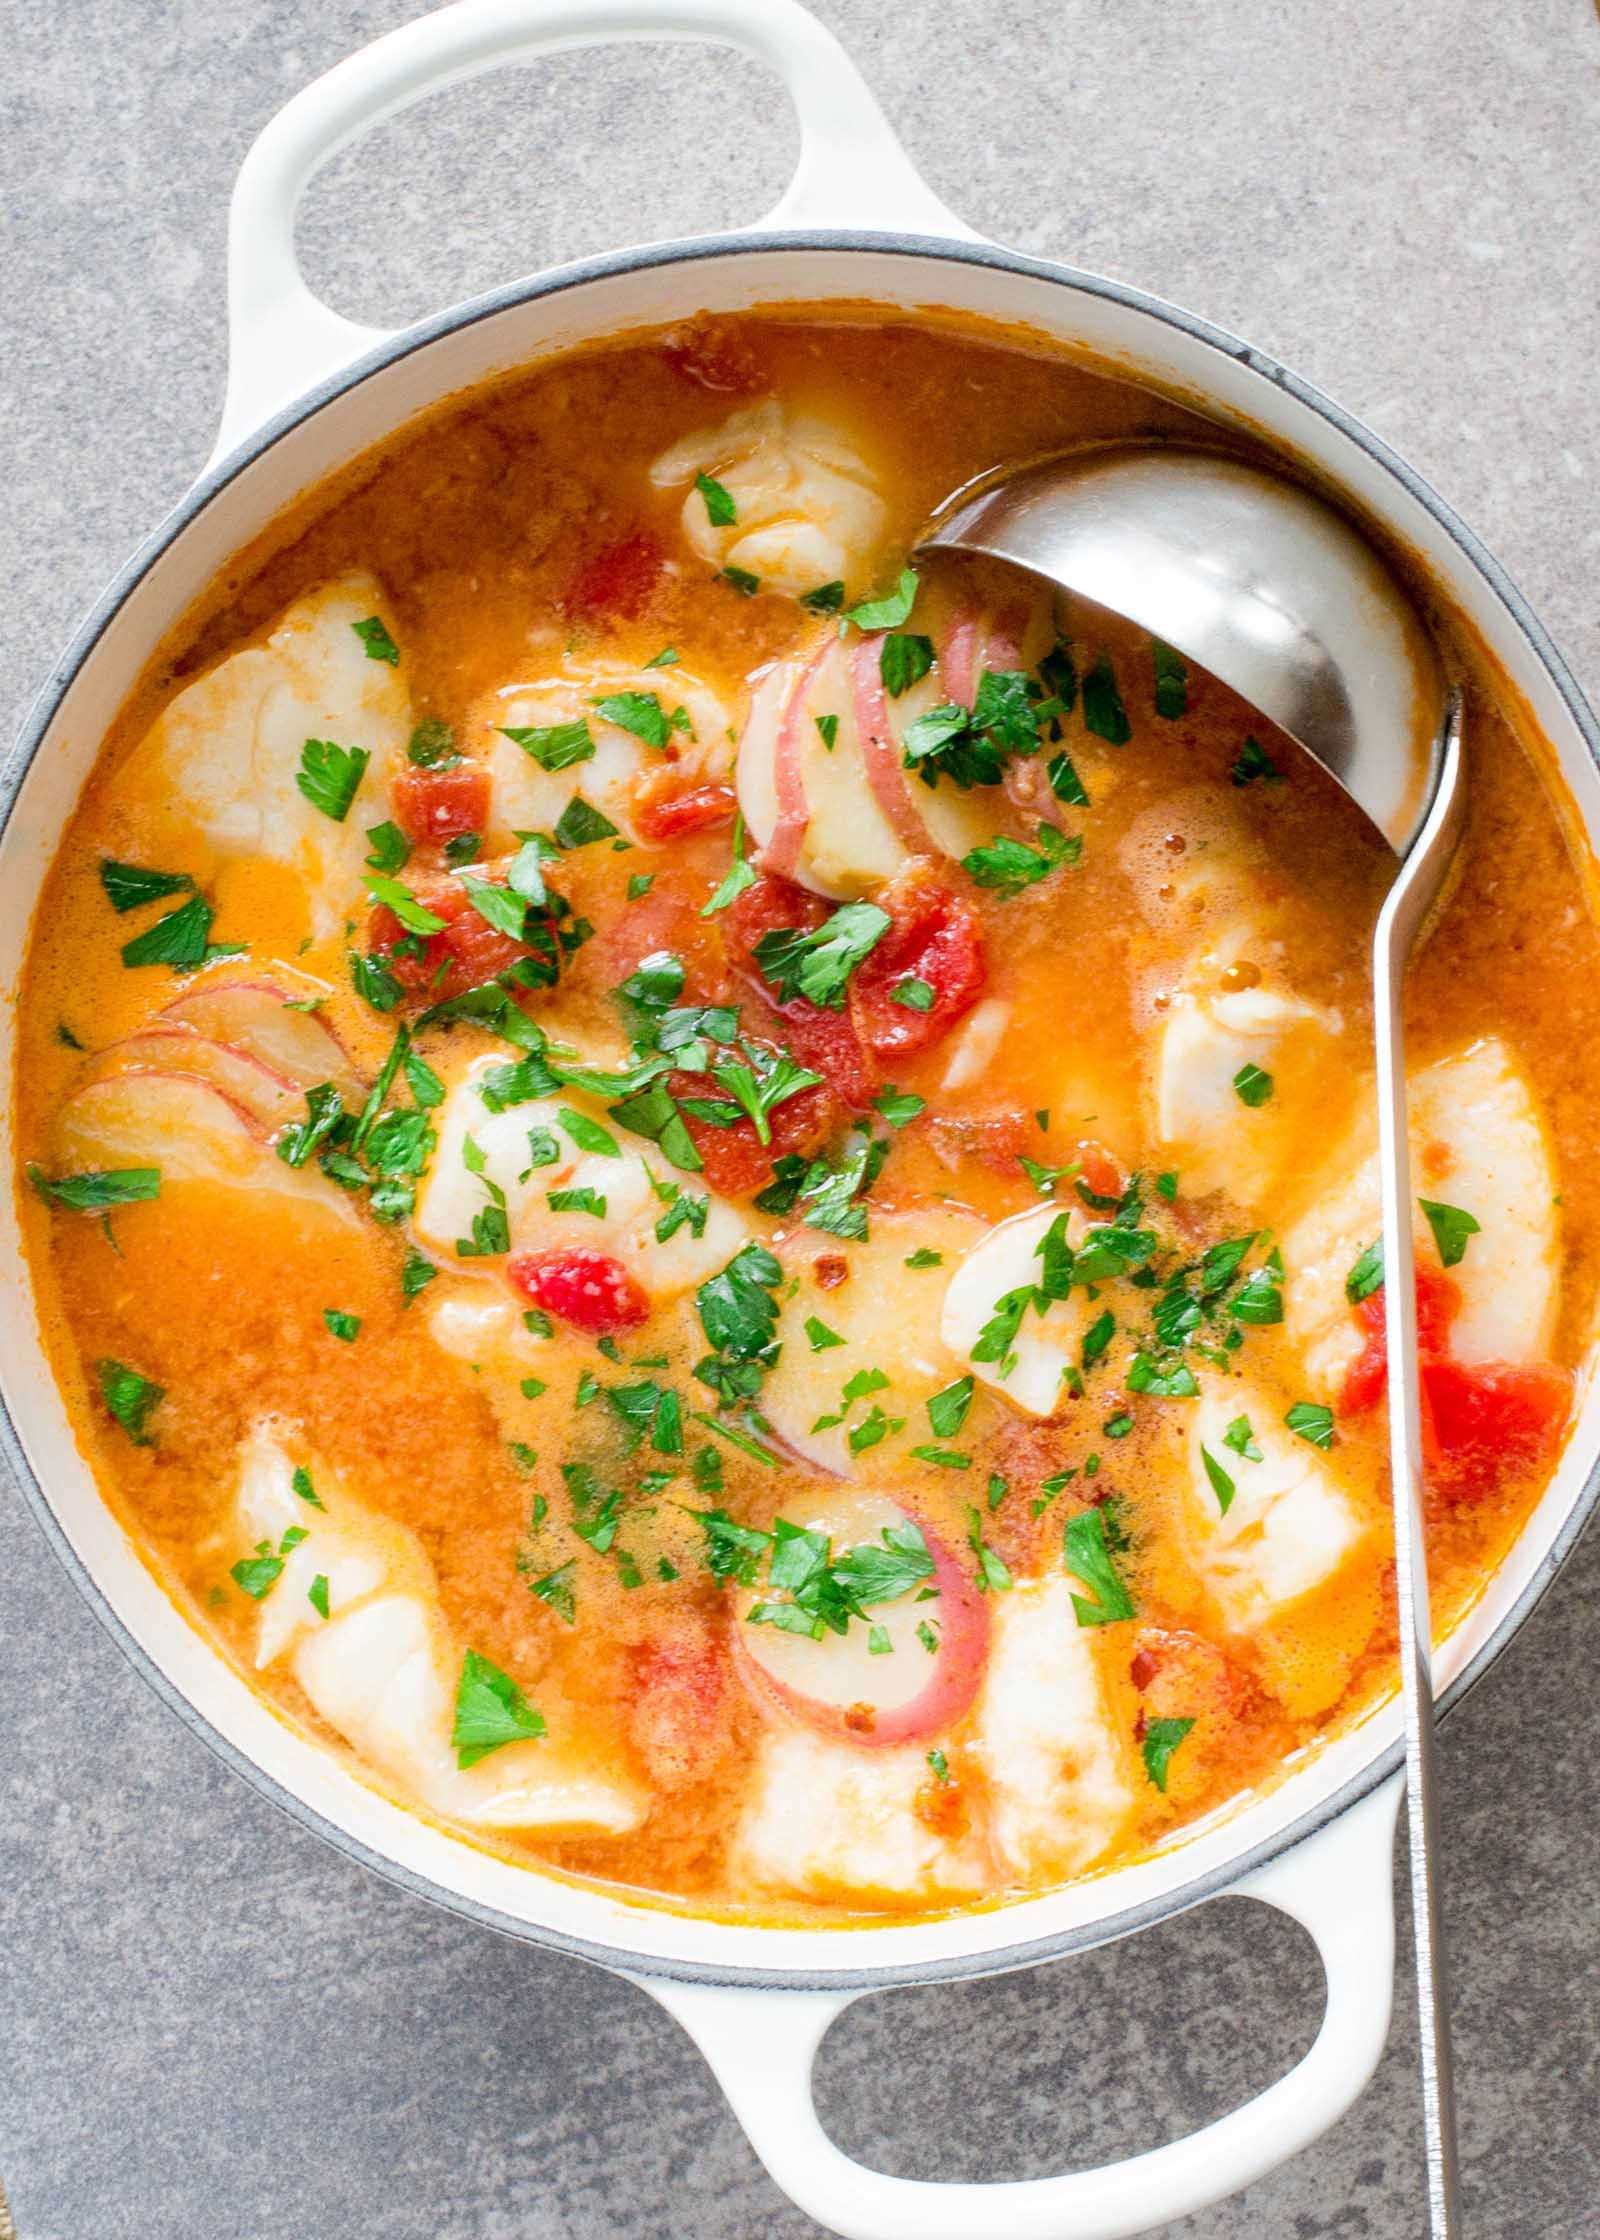 QUICK and EASY fish stew with ginger and tomatoes. Both warming and light. Ready in about 30 minutes. from @simplyrecipes